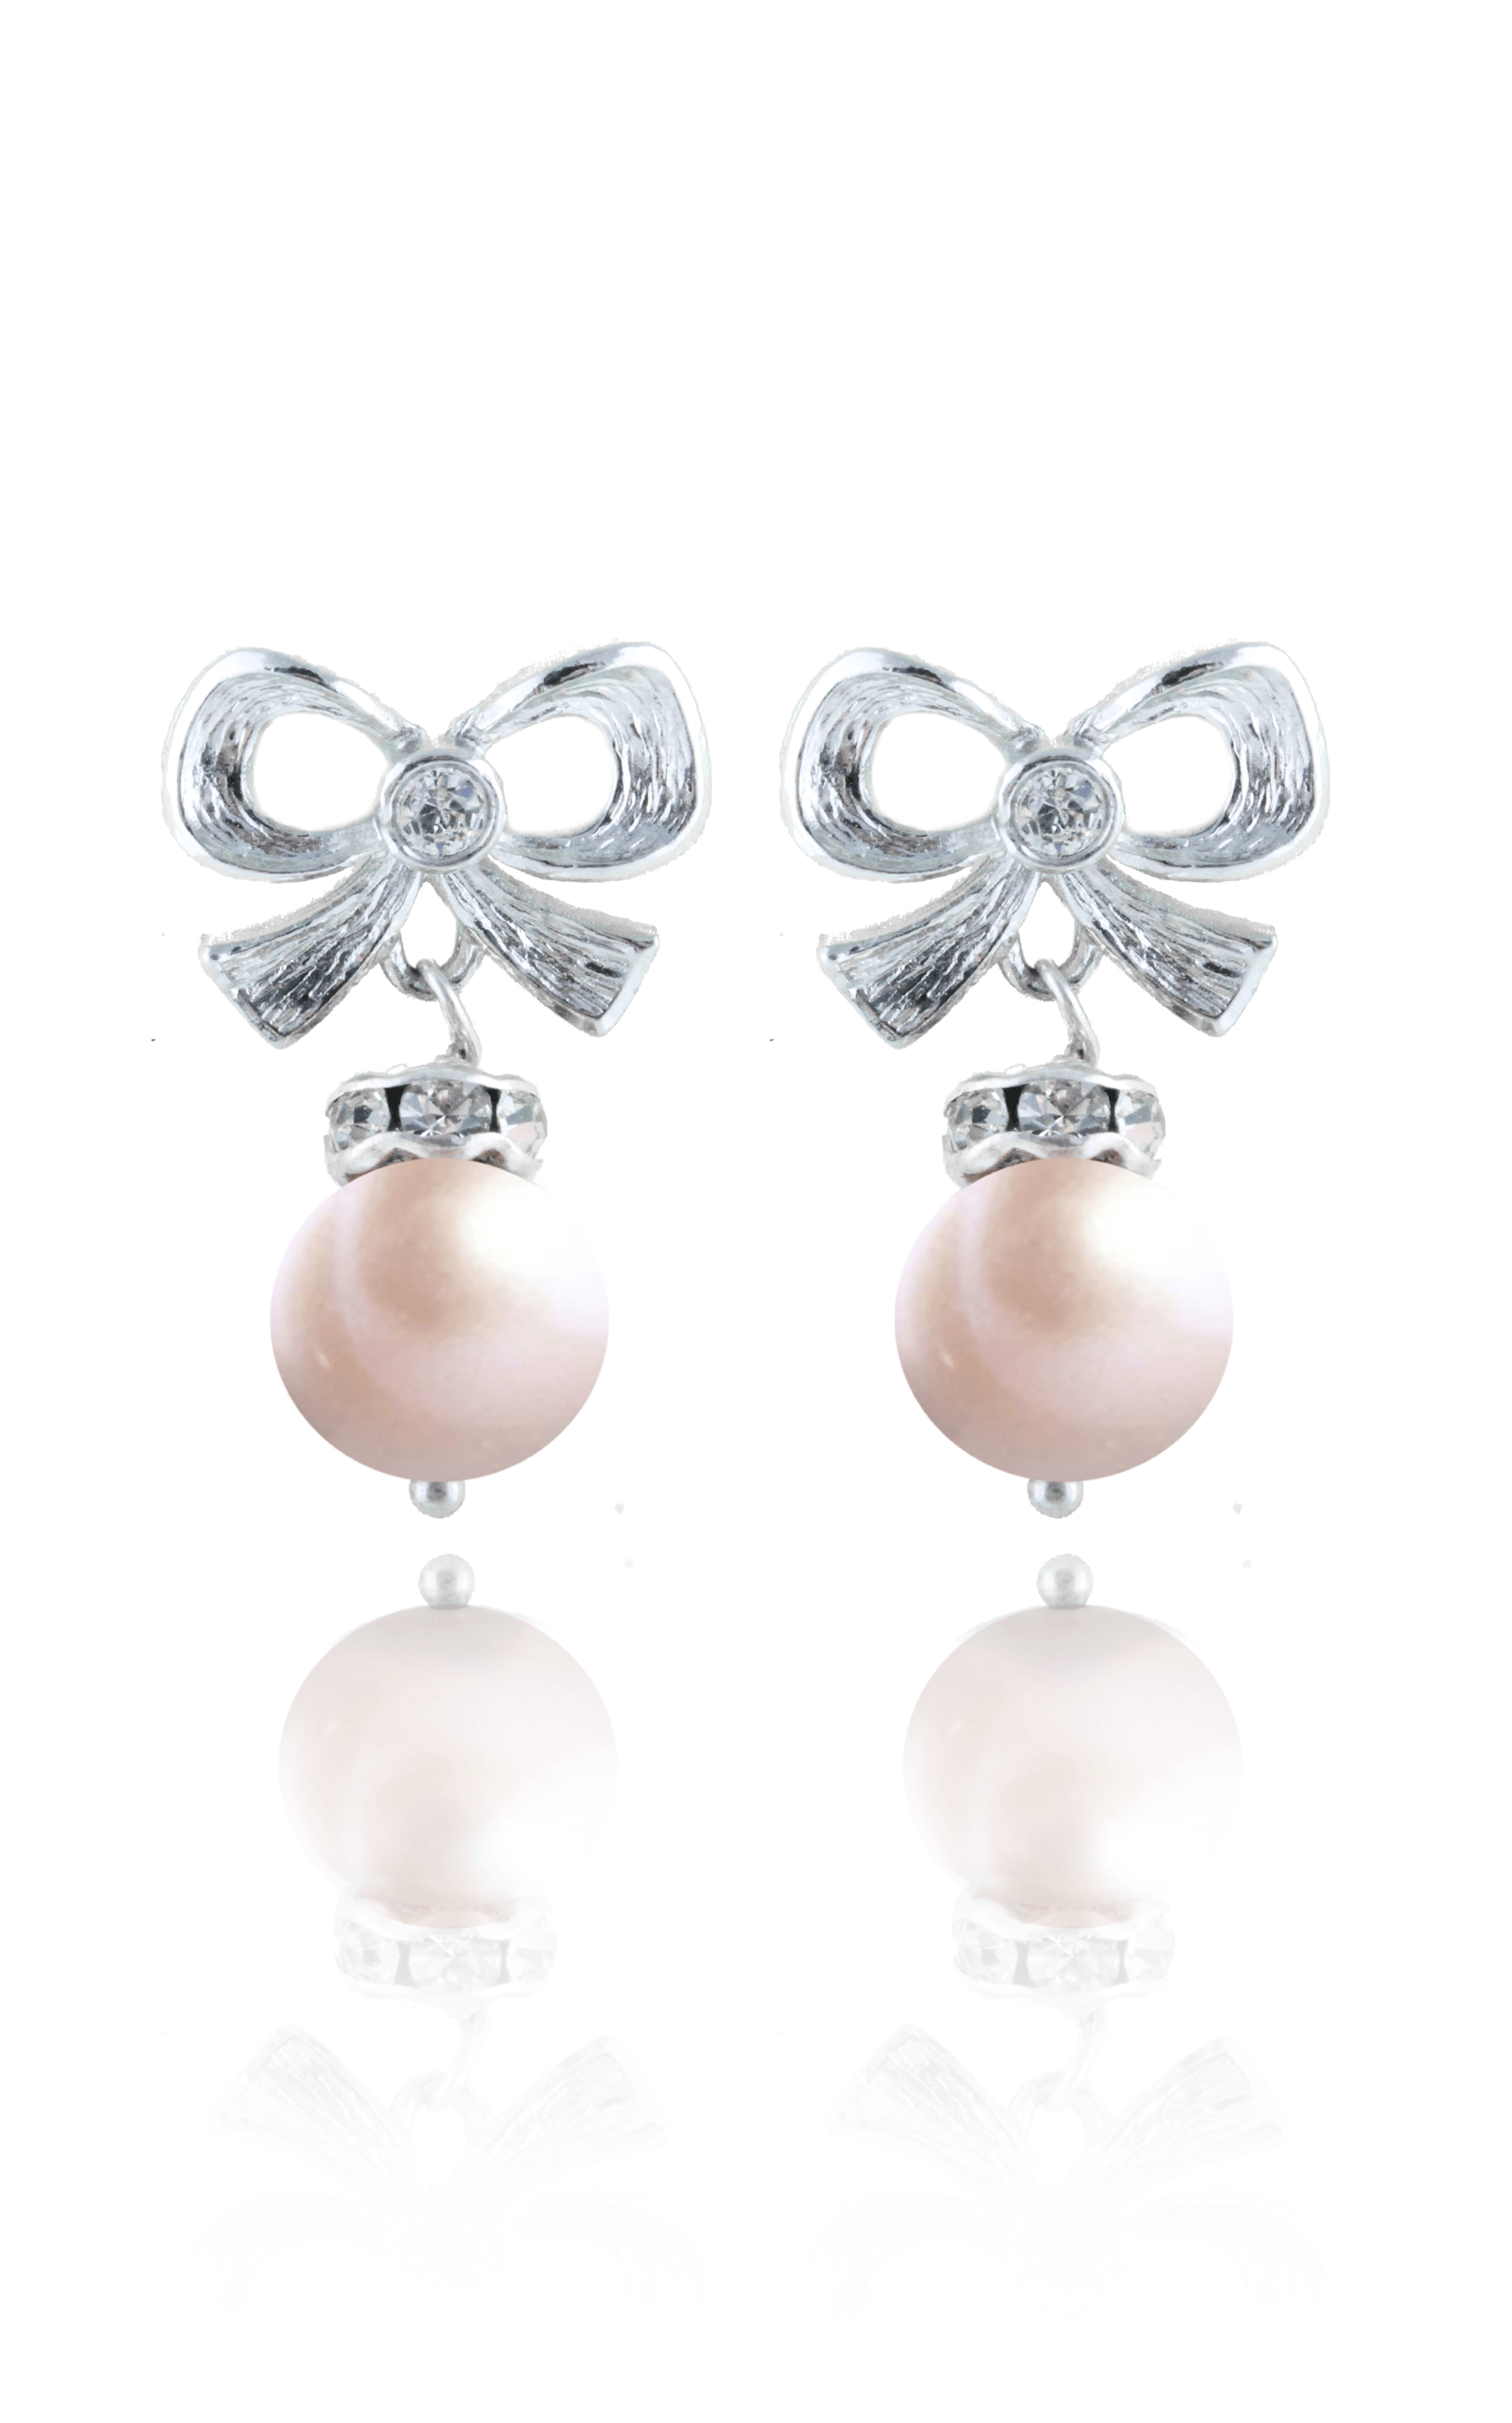 The Petite Alice Earrings